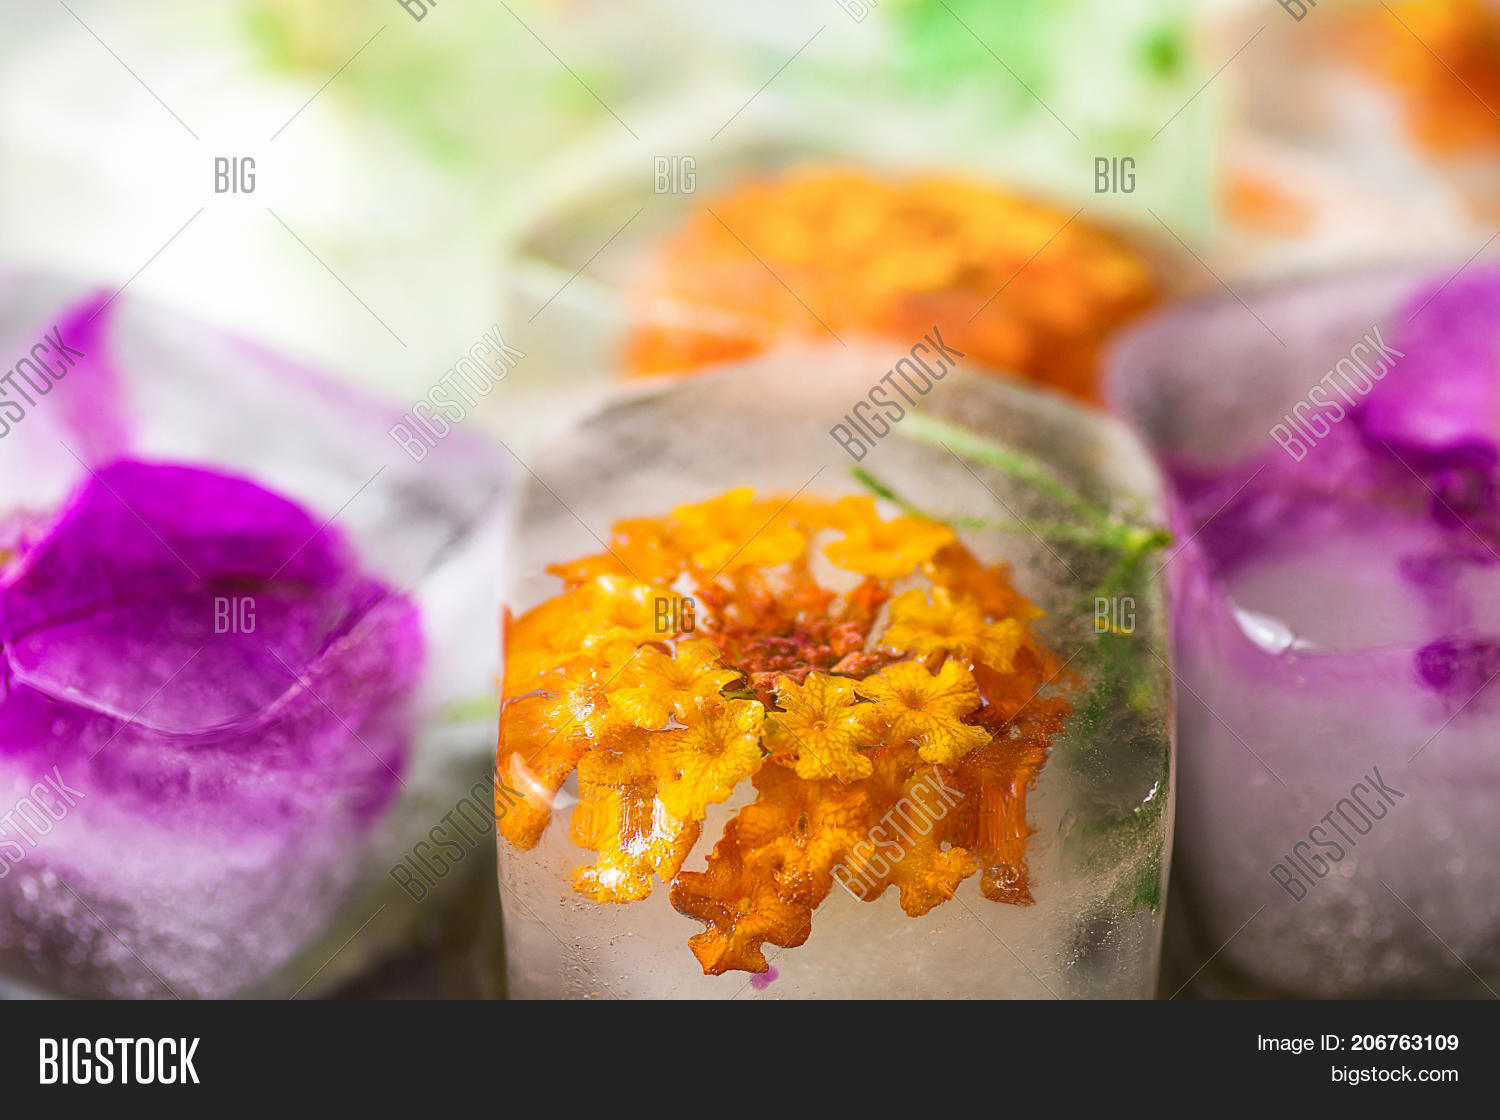 Homemade Ice Cubes Image Photo Free Trial Bigstock